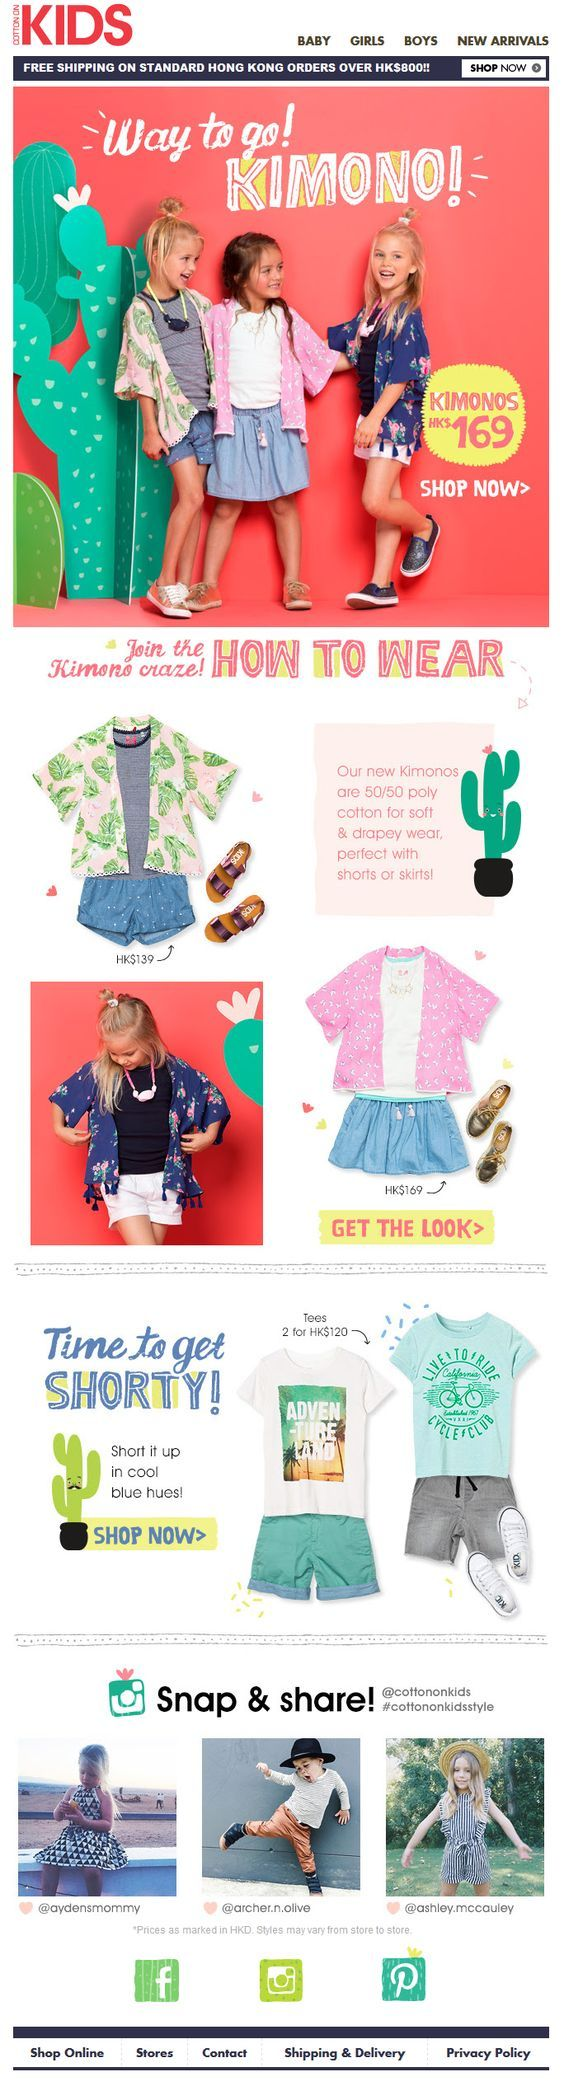 Create back-to-school outfits.